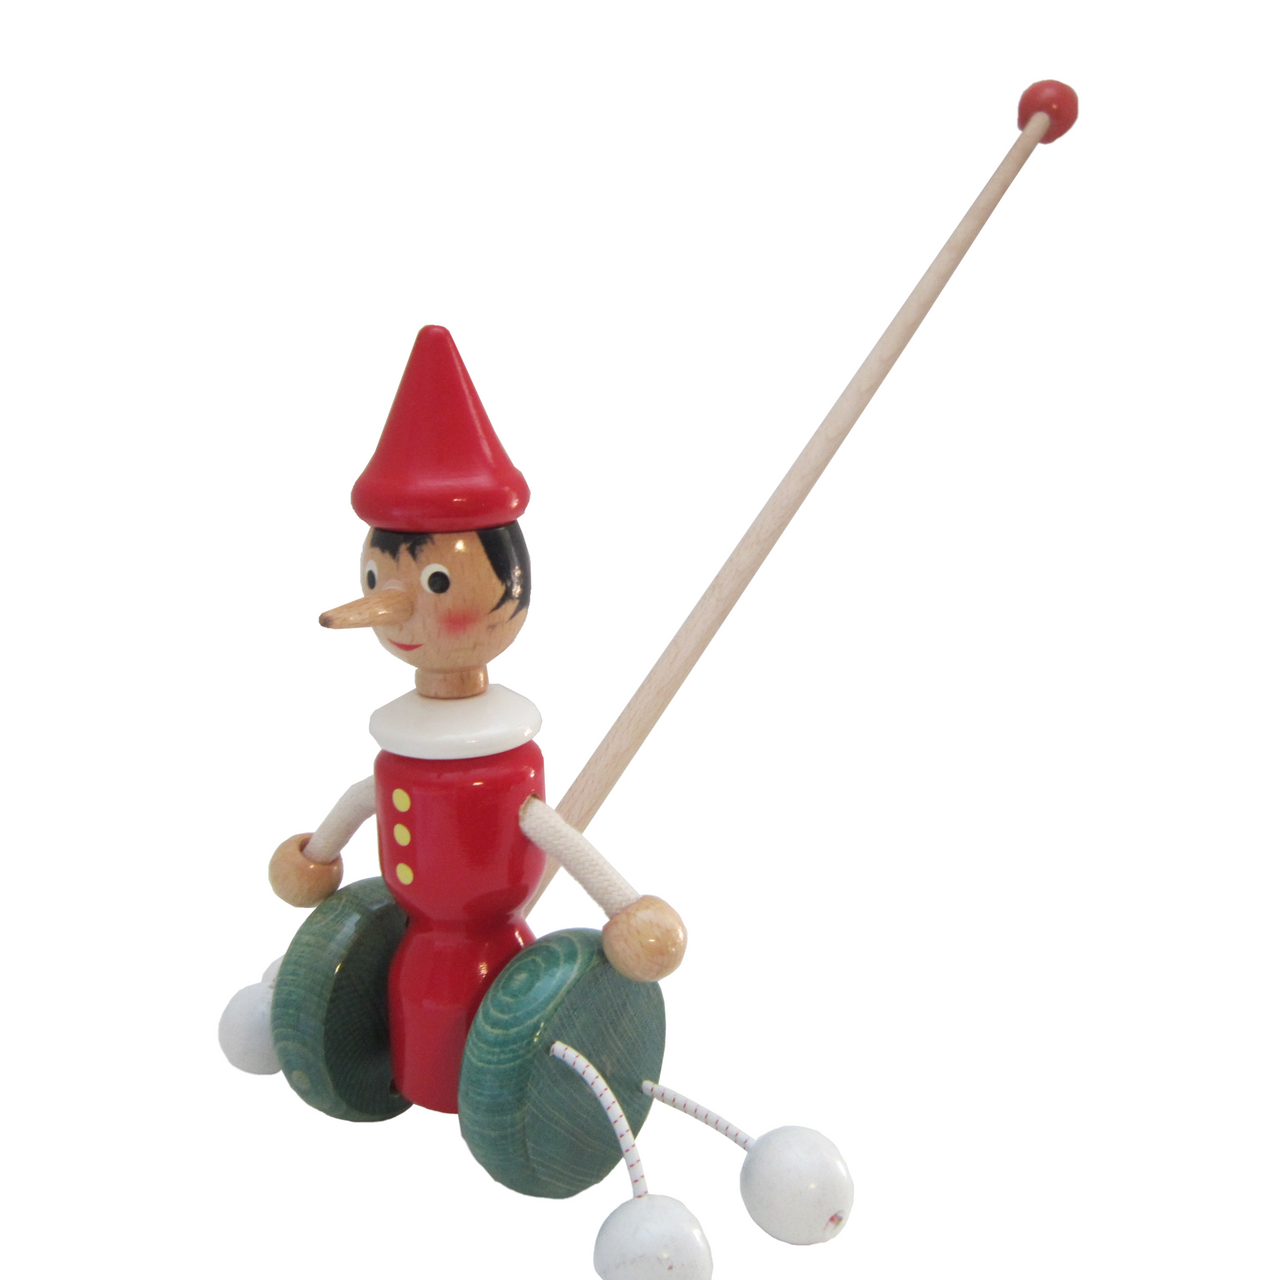 Pinocchio Push Toy with Wheels